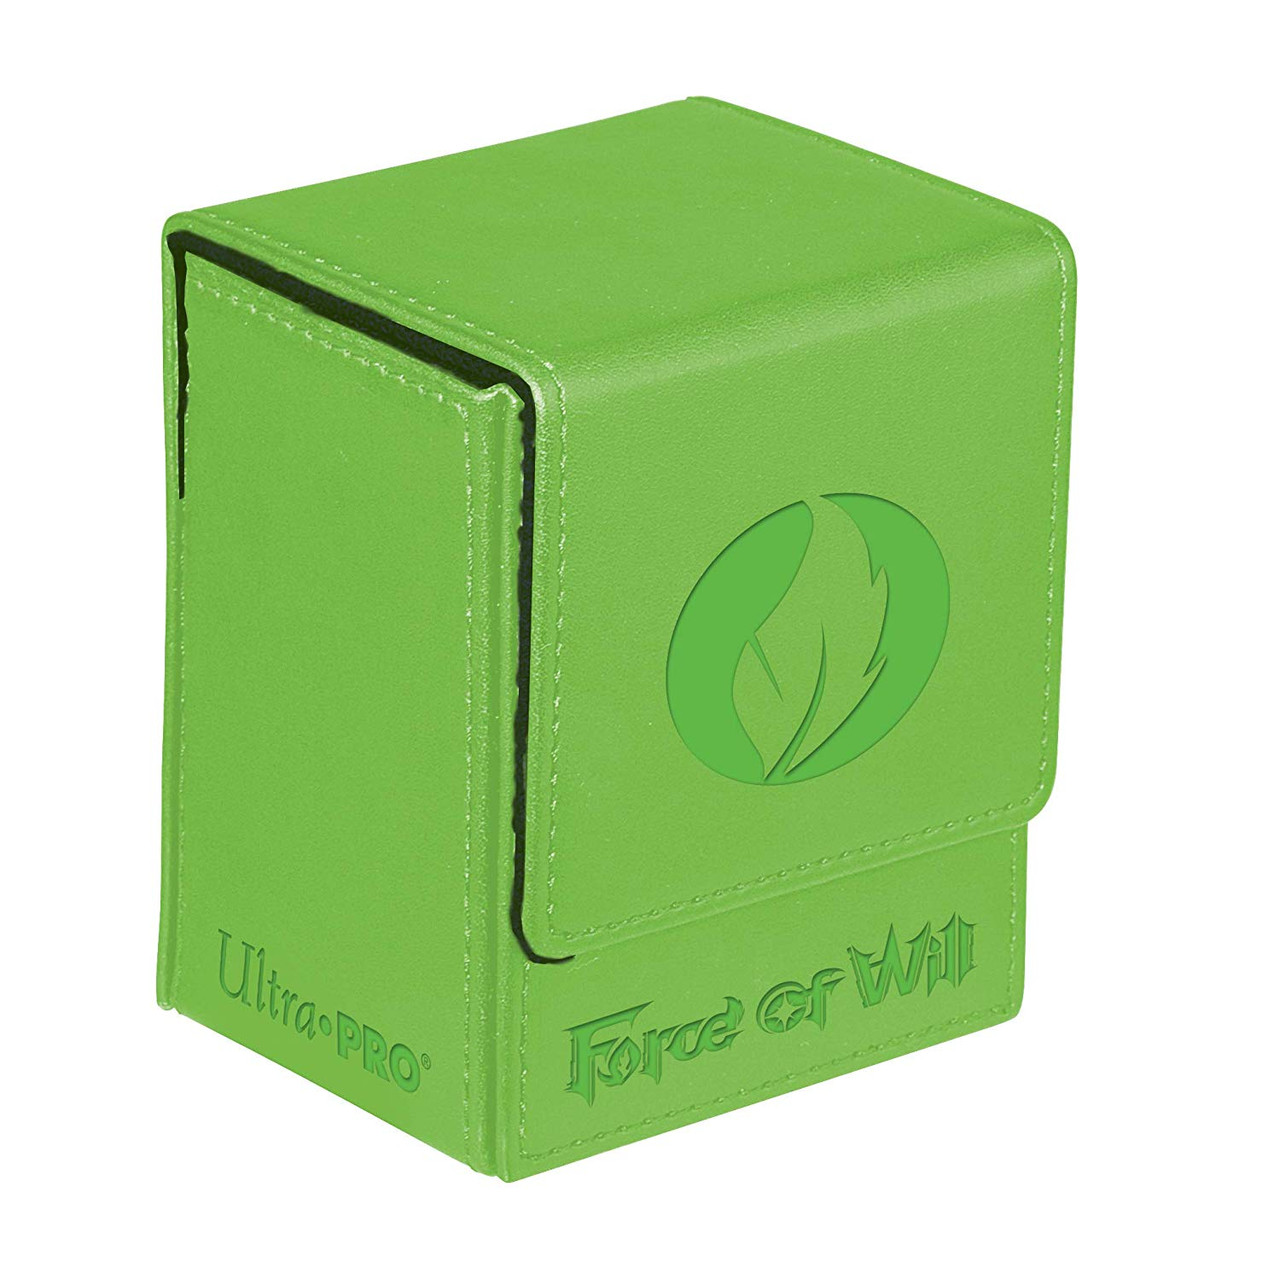 Force of Will Flip Box - Wind (Green) - - Special Order